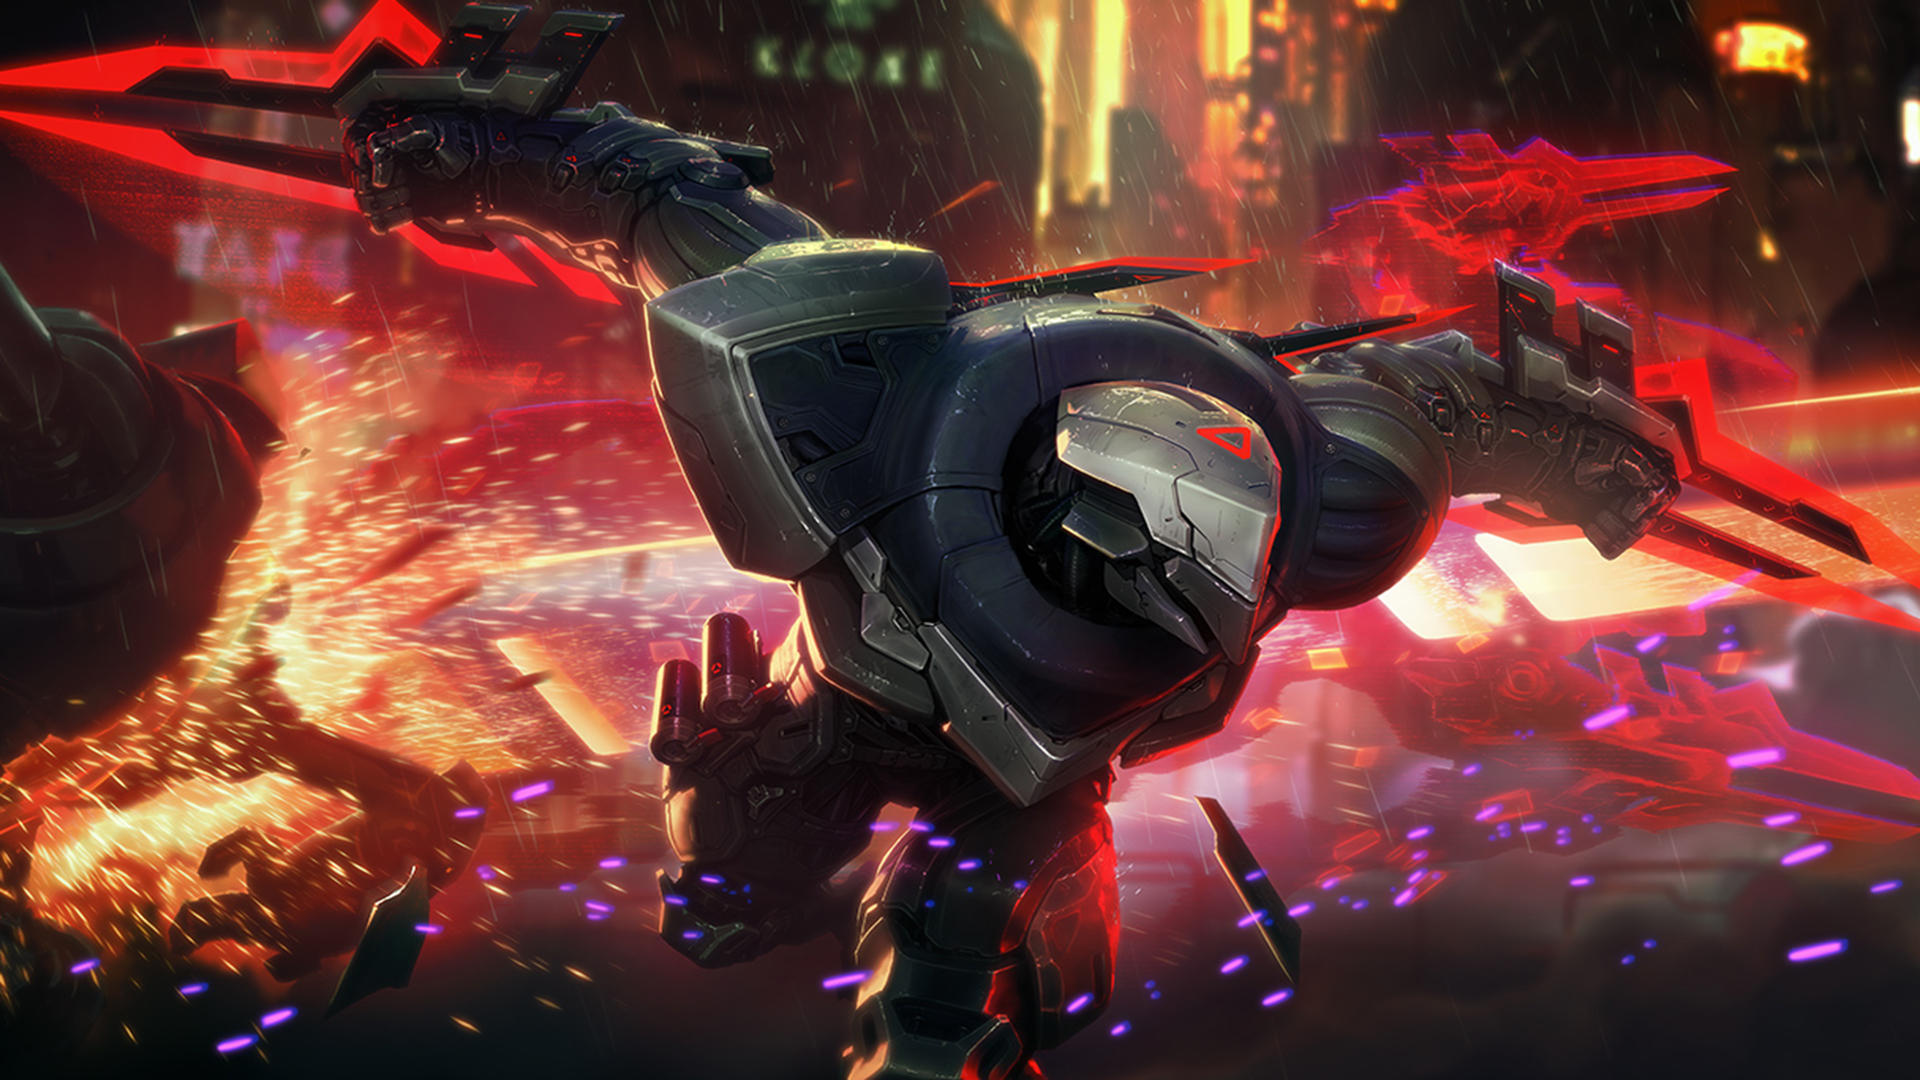 PROJECT Zed League Of Legends Wallpapers HD 1920x1080 1920x1080